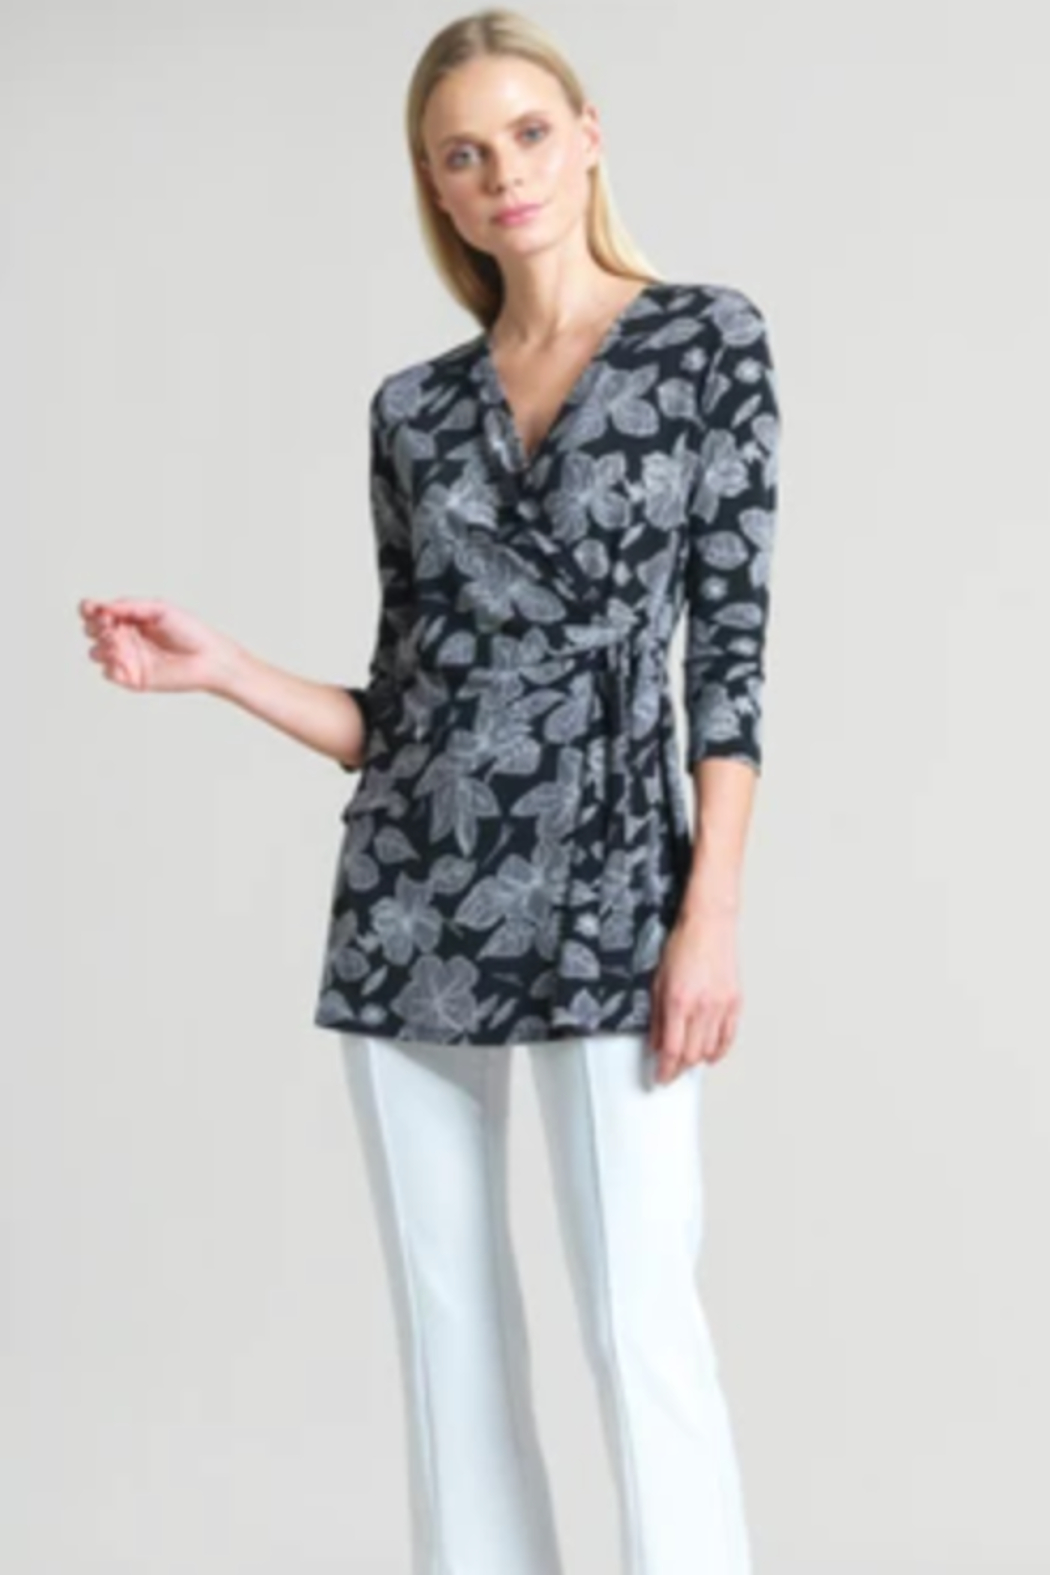 Clara Sunwoo Floral Sketch Soft Knit Side Tie Tunic - Main Image